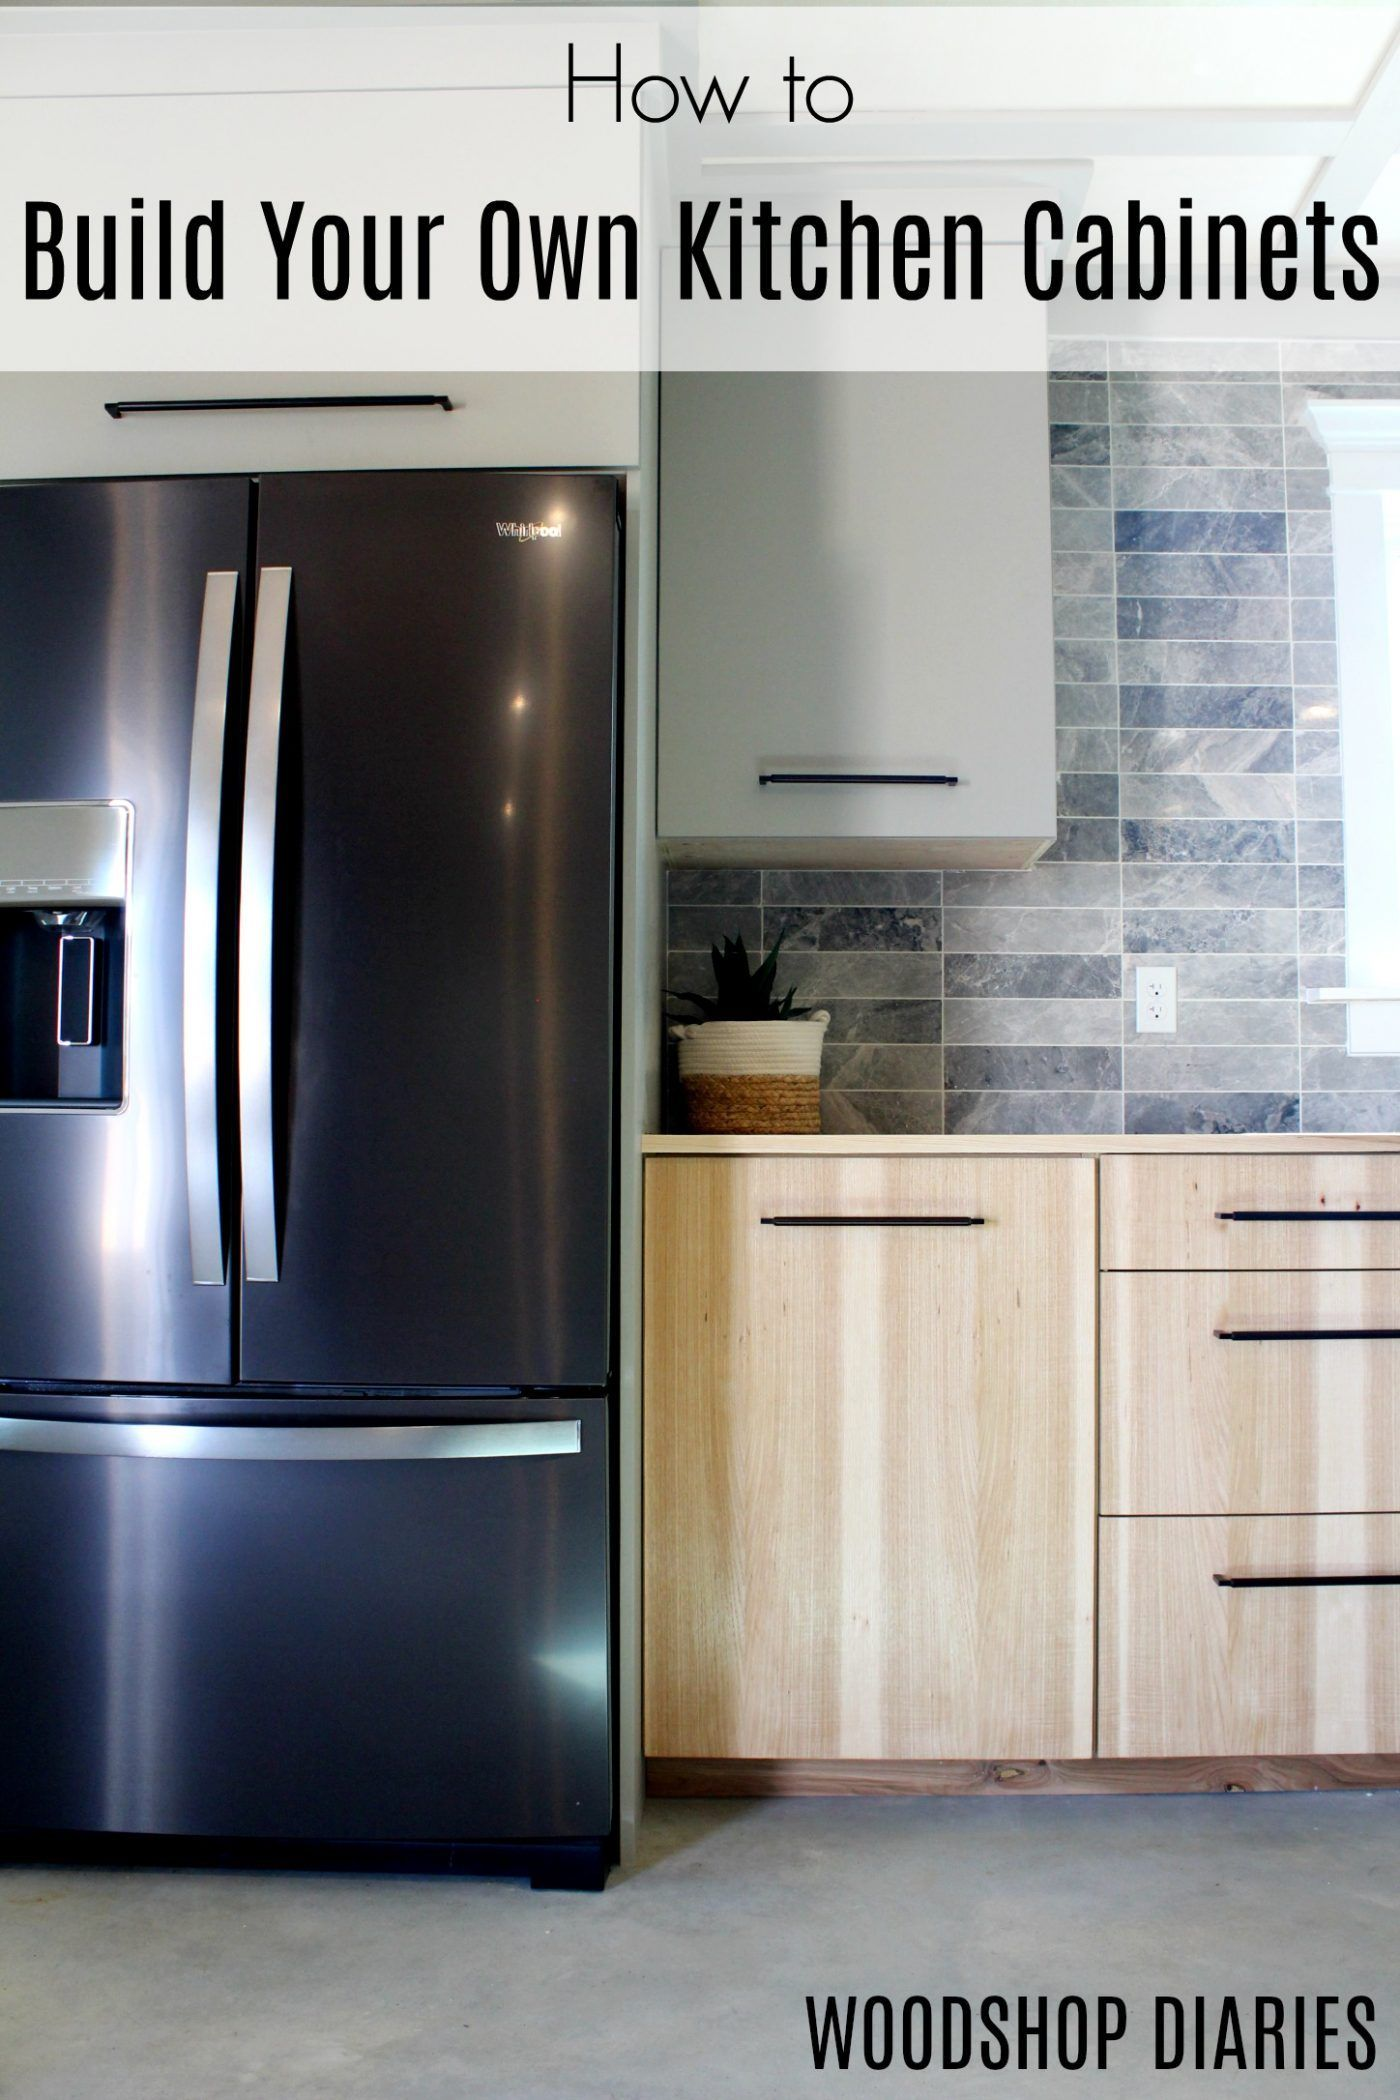 Diy Kitchen Cabinets Made From Only Plywood Diy Kitchen Cabinets Diy Kitchen Cabinets Build Diy Kitchen Renovation